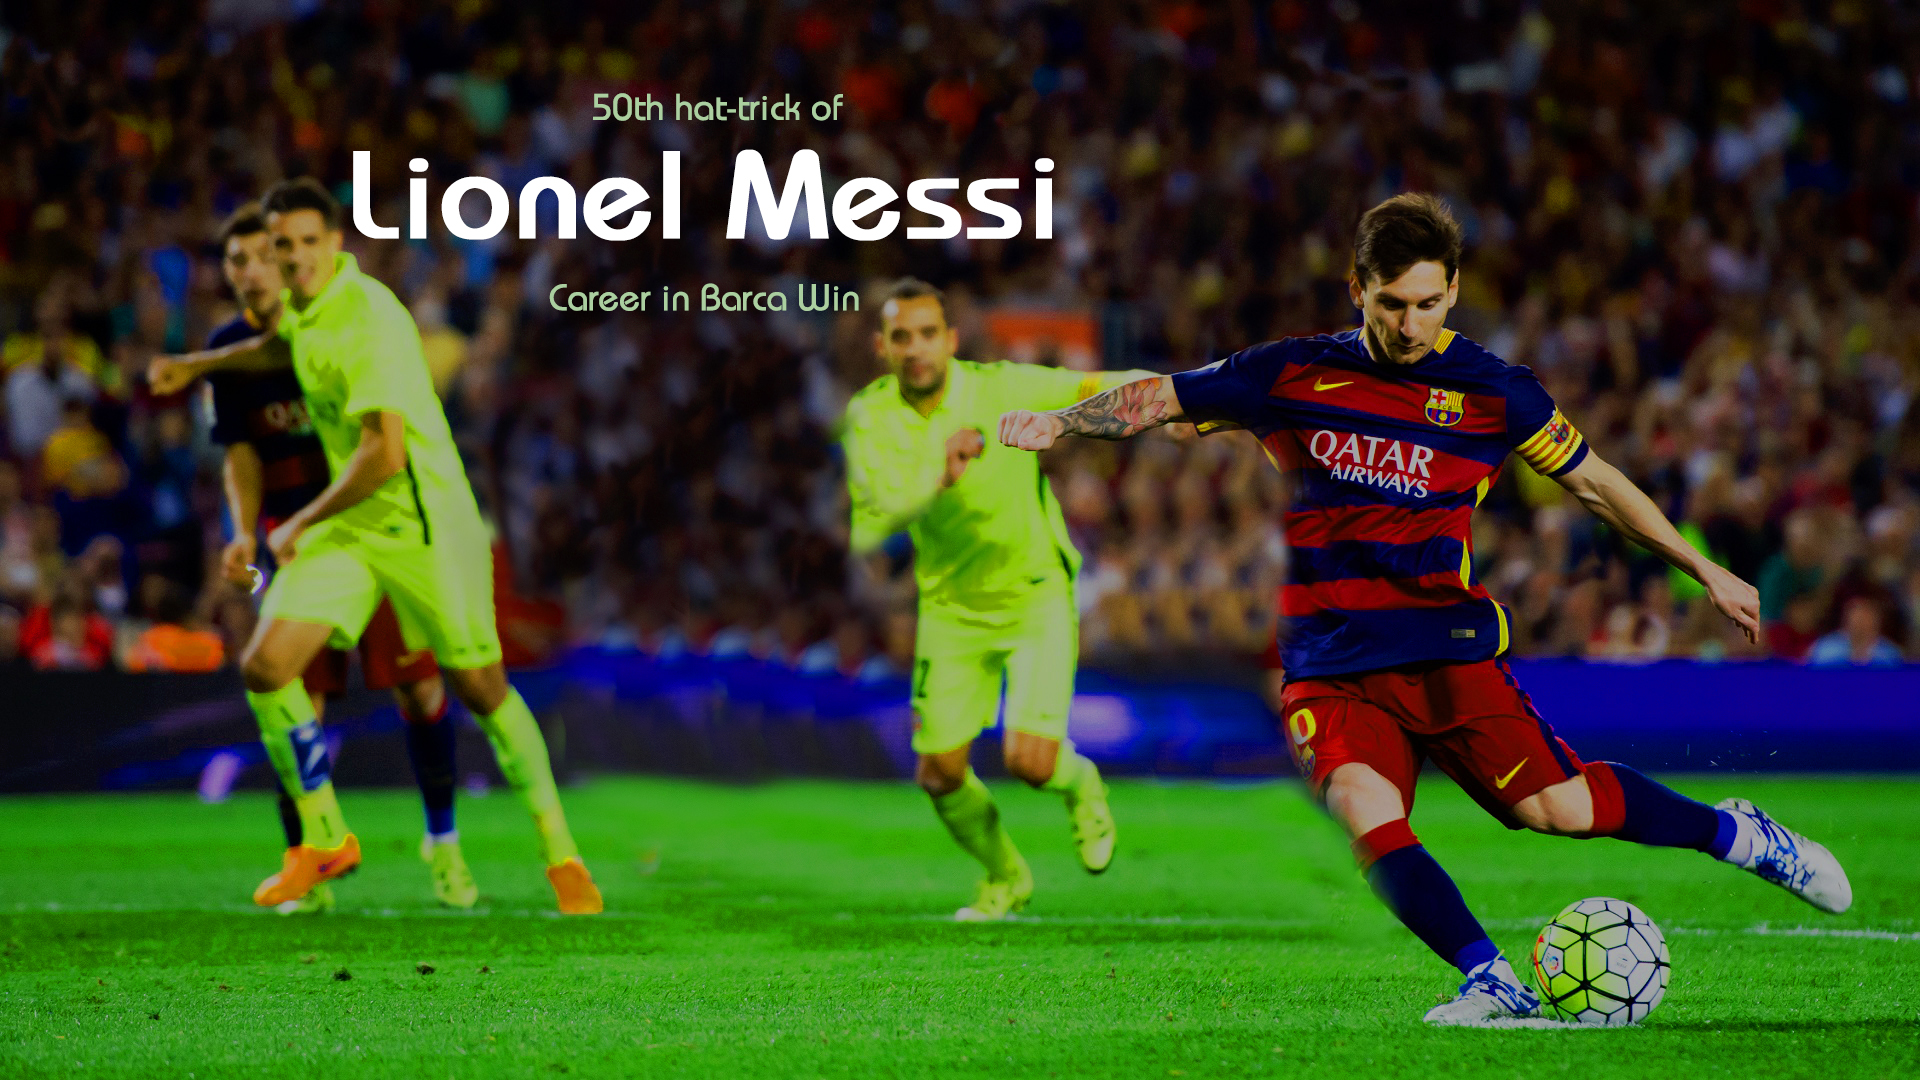 50th hat-trick of Lionel Messi Career in Barca Win